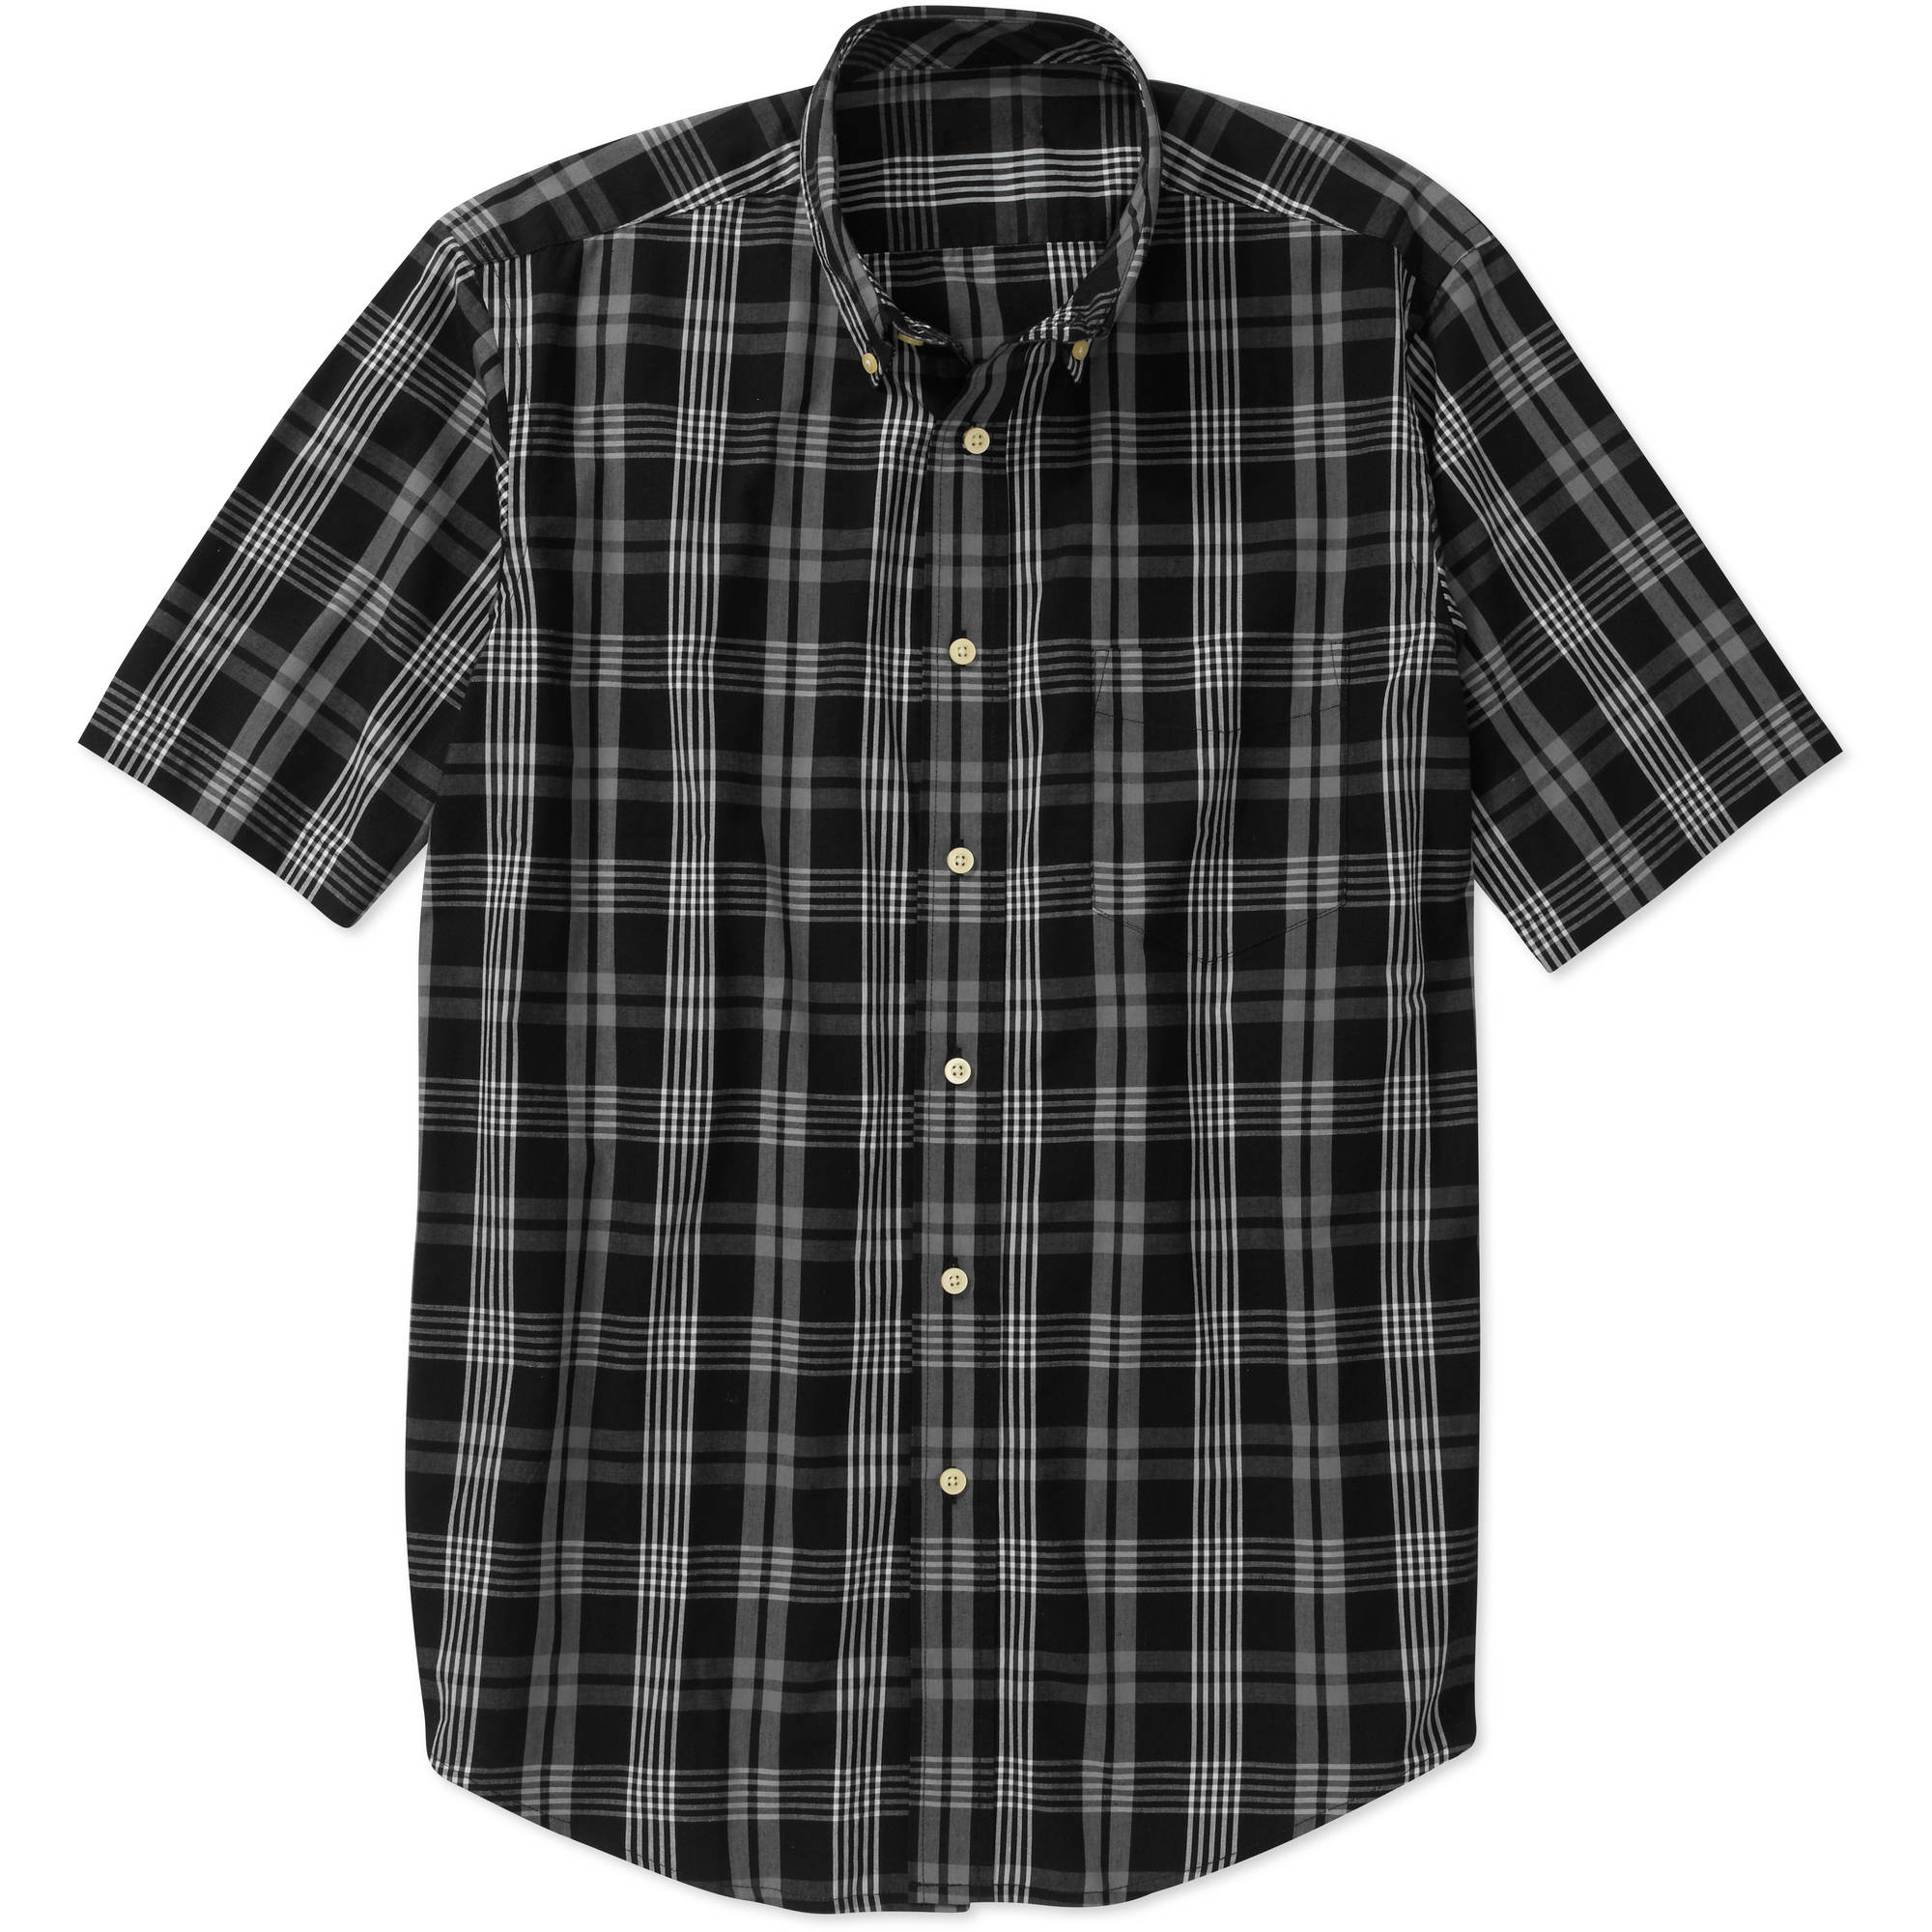 George Big Men's Short Sleeve Plaid Woven